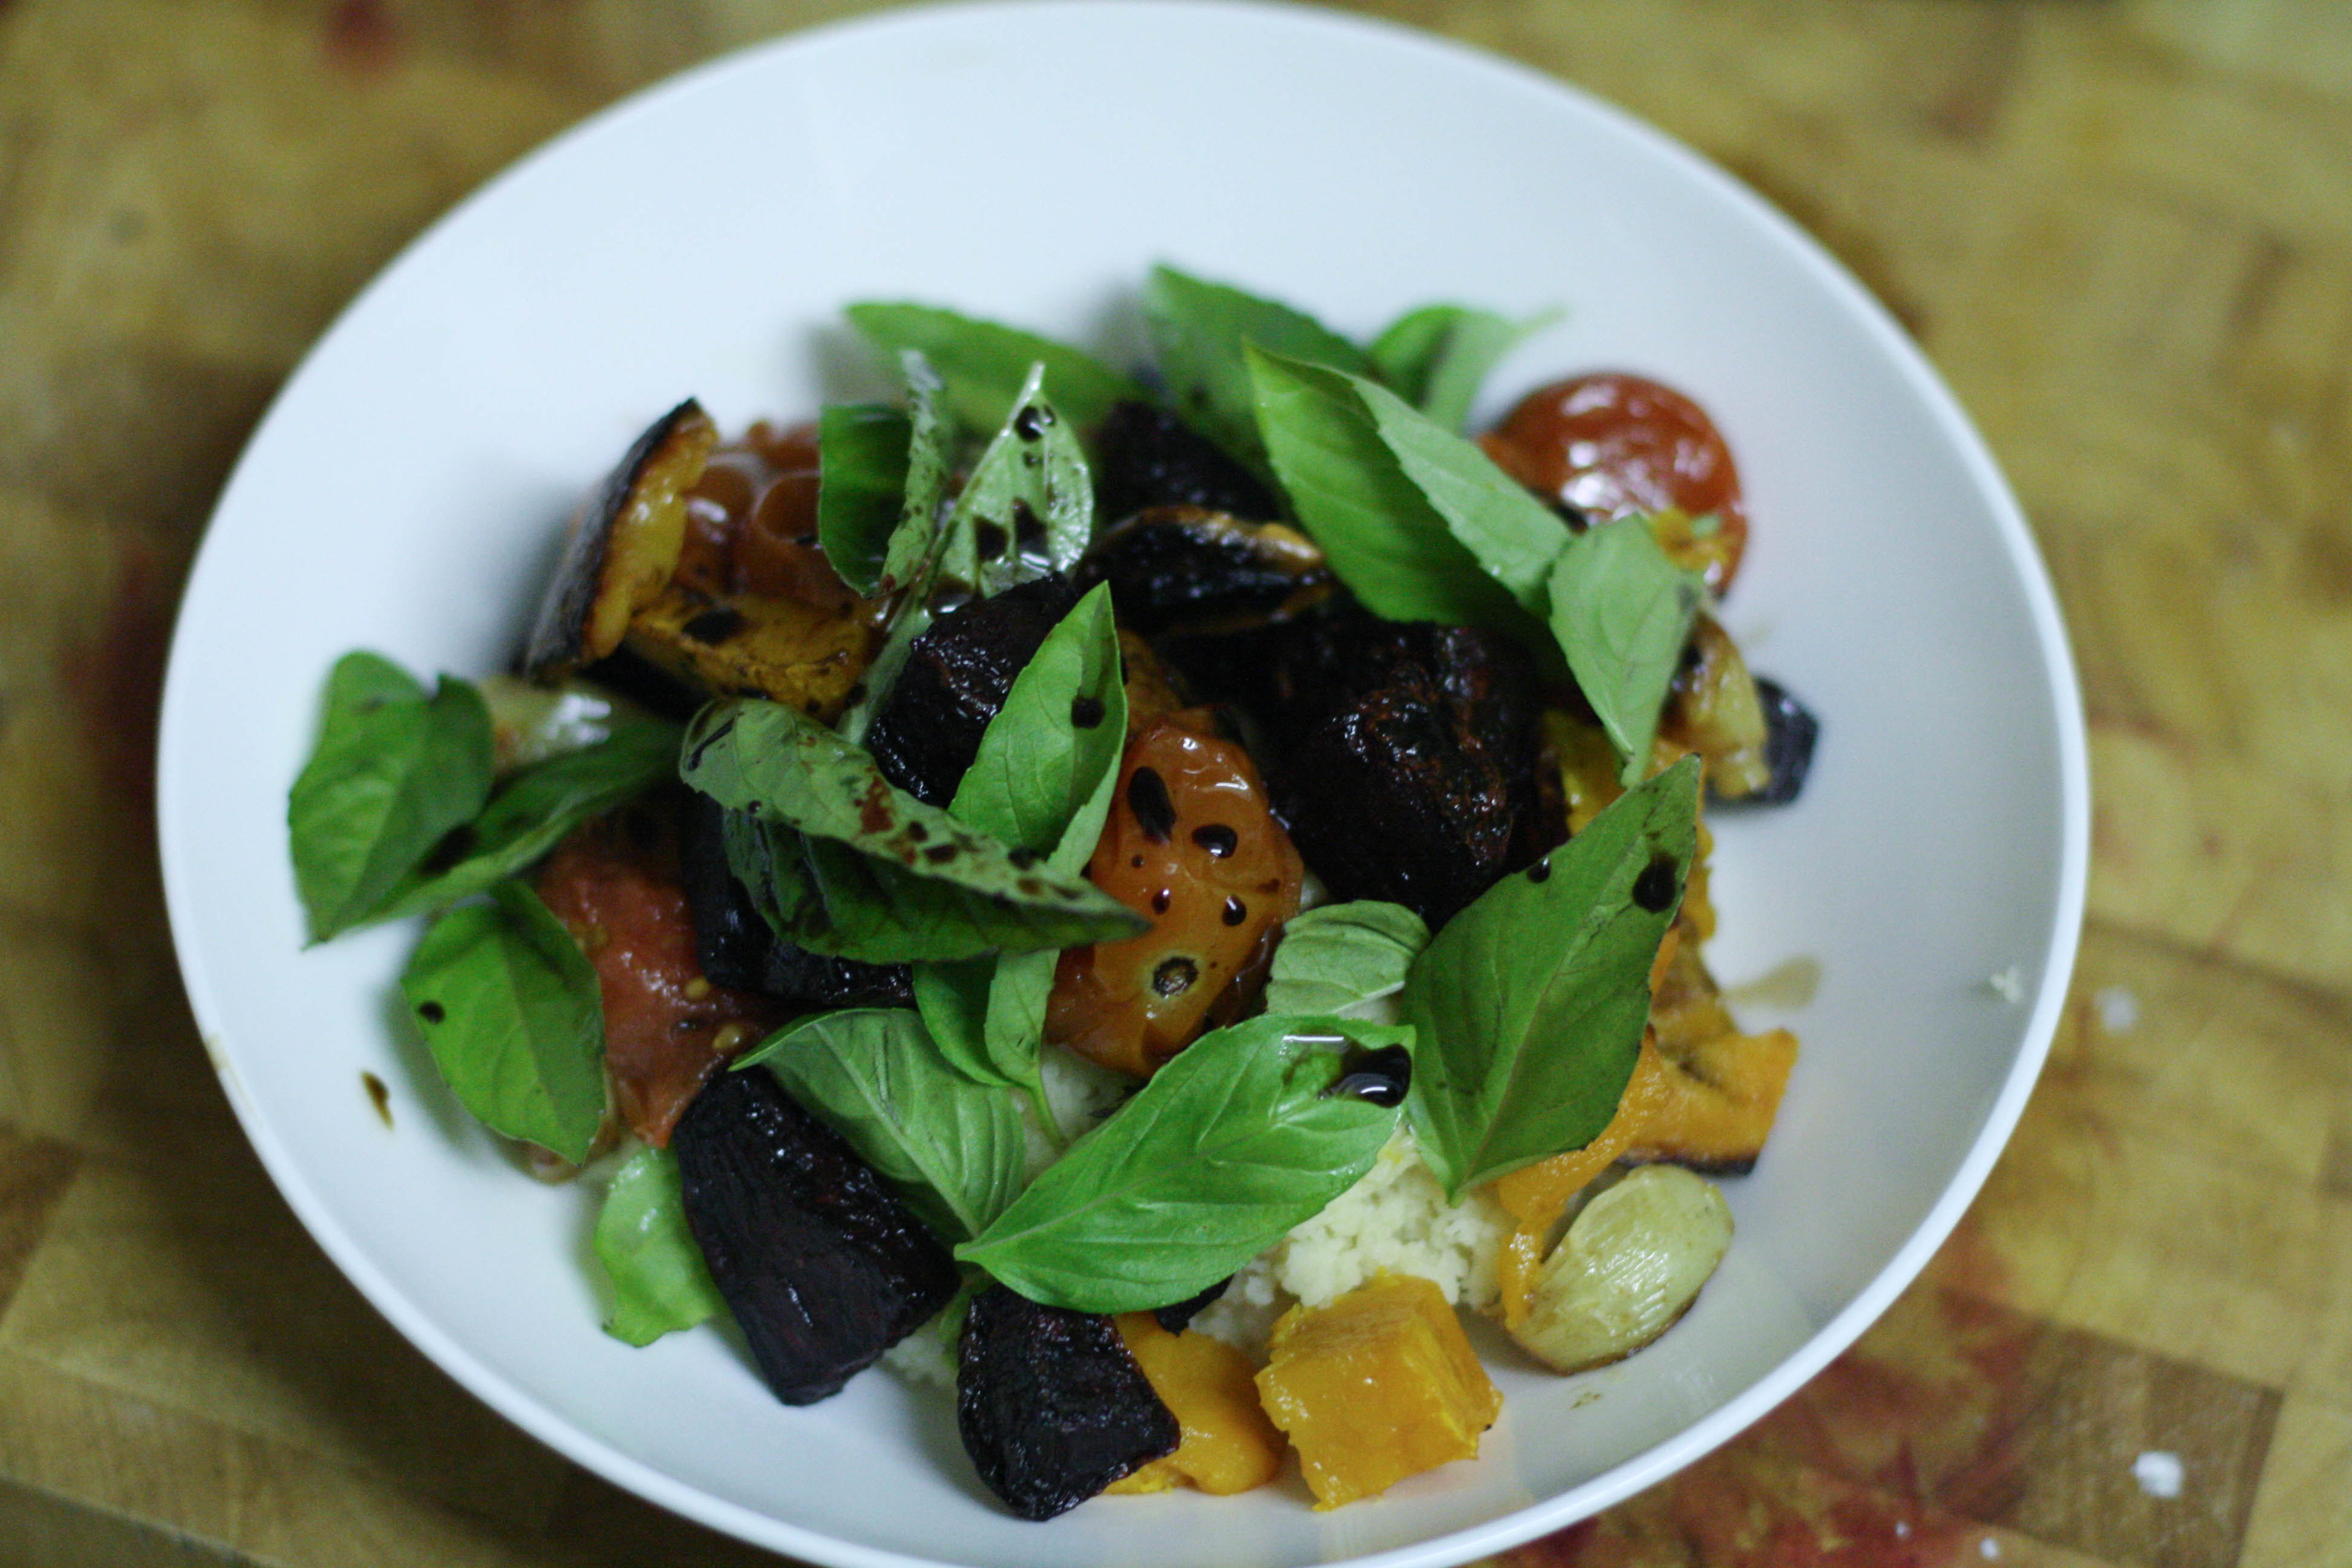 A photo of dinner: roast beetroot, pumpkin, garlic and cherry tomatoes on couscous served with balsamic vinegar reduction and many basil leaves.